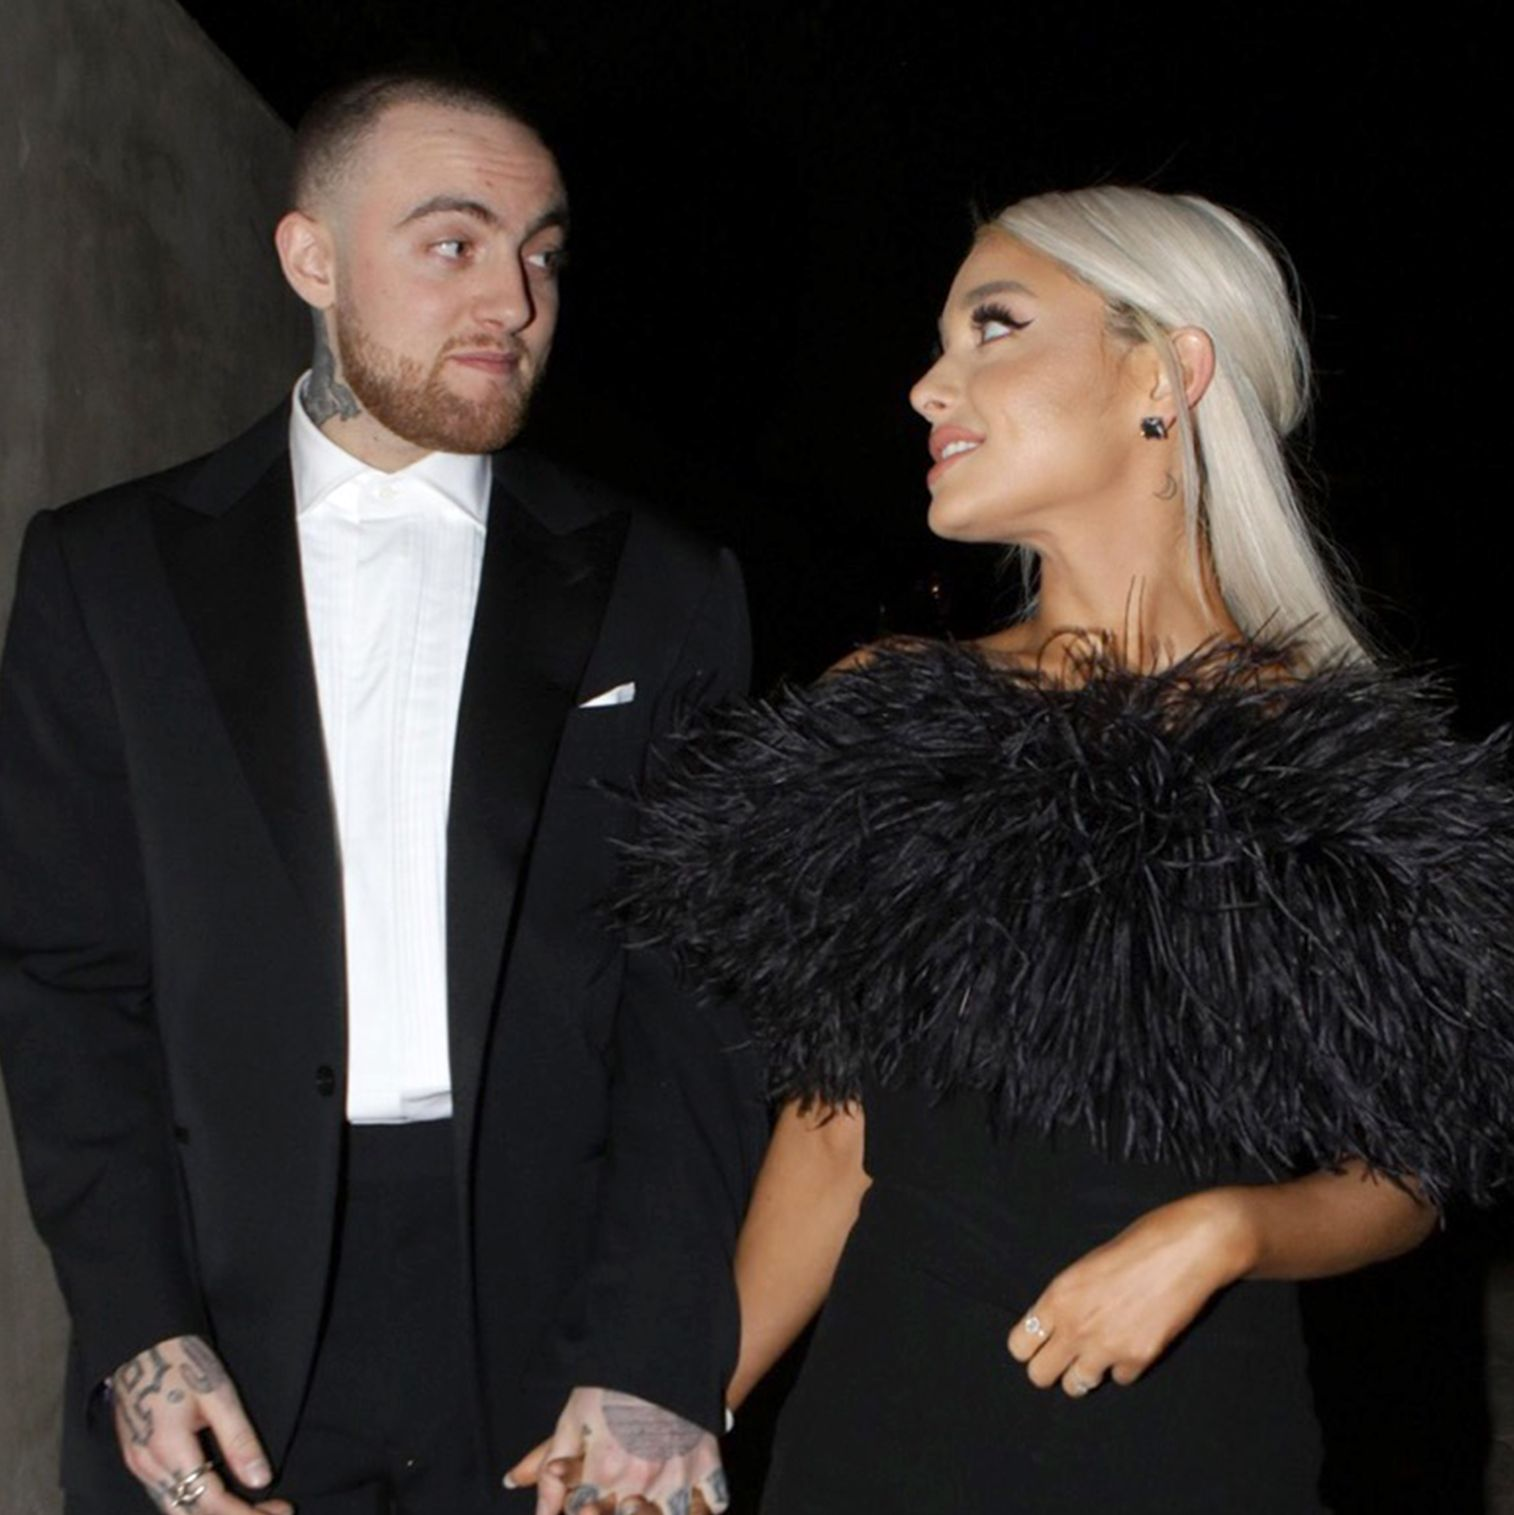 The Touching Way Ariana Grande Paid Tribute to Mac Miller for Their Song's Anniversary